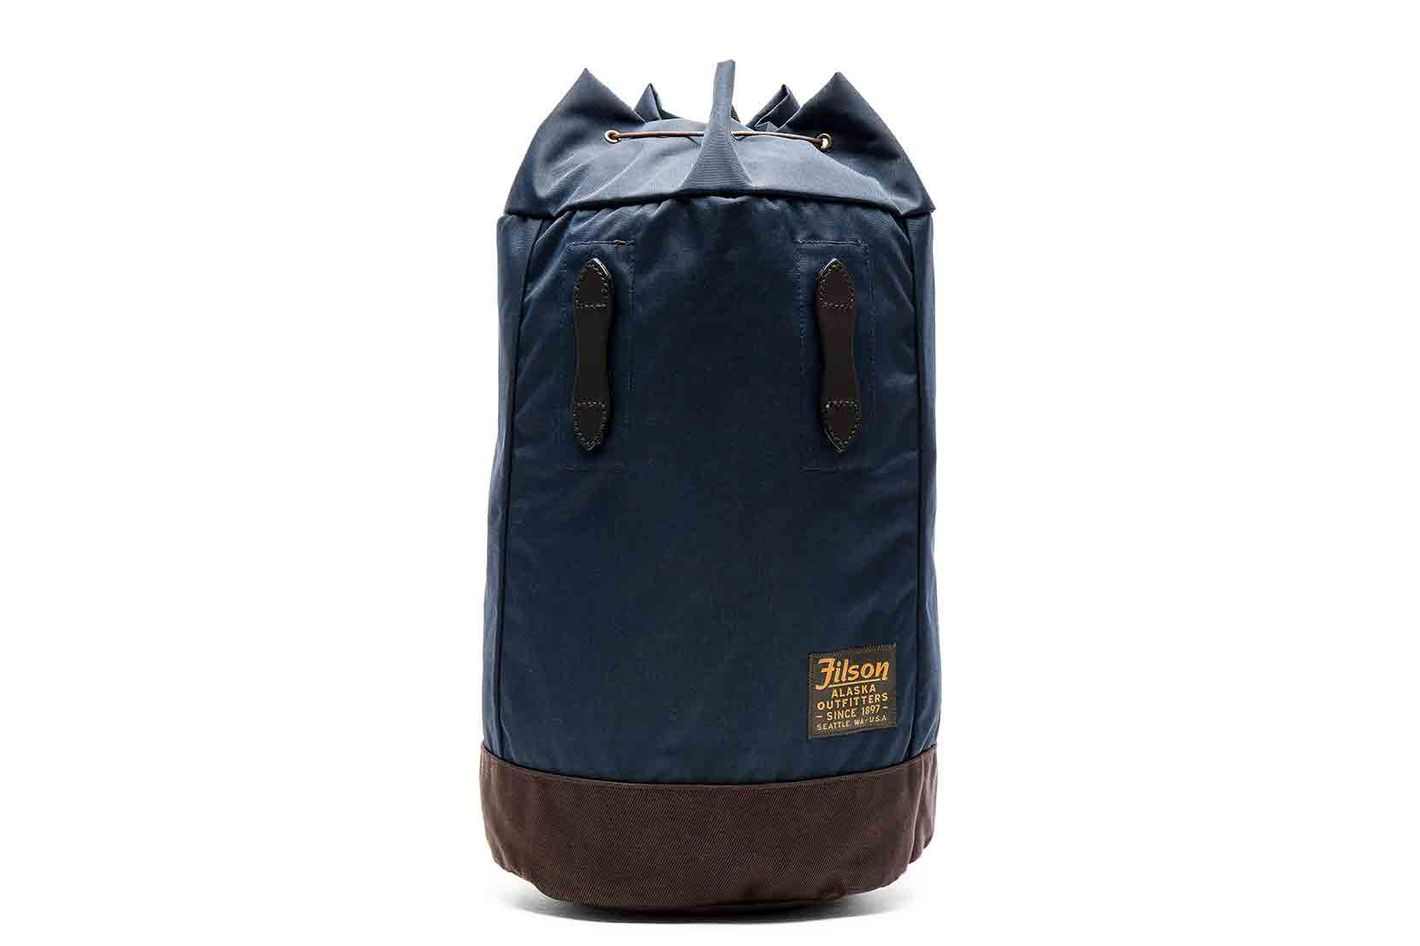 Filson Small Pack, Navy